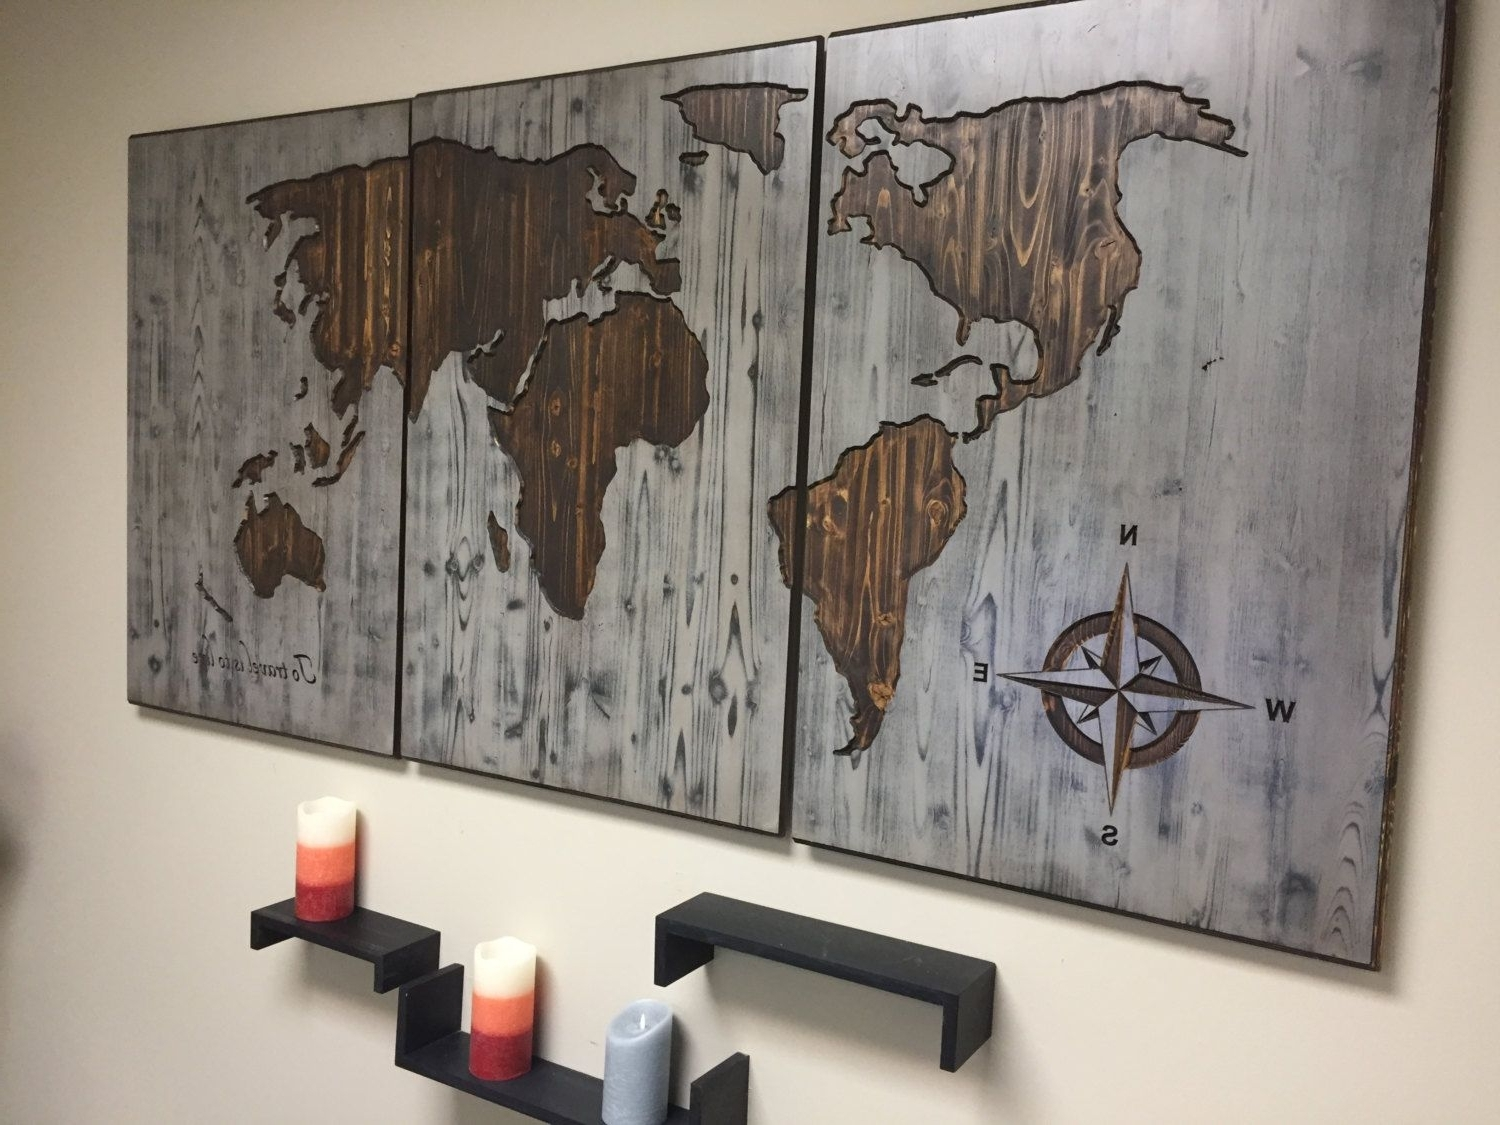 Wooden Wall Art Pertaining To Trendy Wall Decor For Home, World Map, Customized, Wooden Map, Push Pin Map (View 14 of 15)